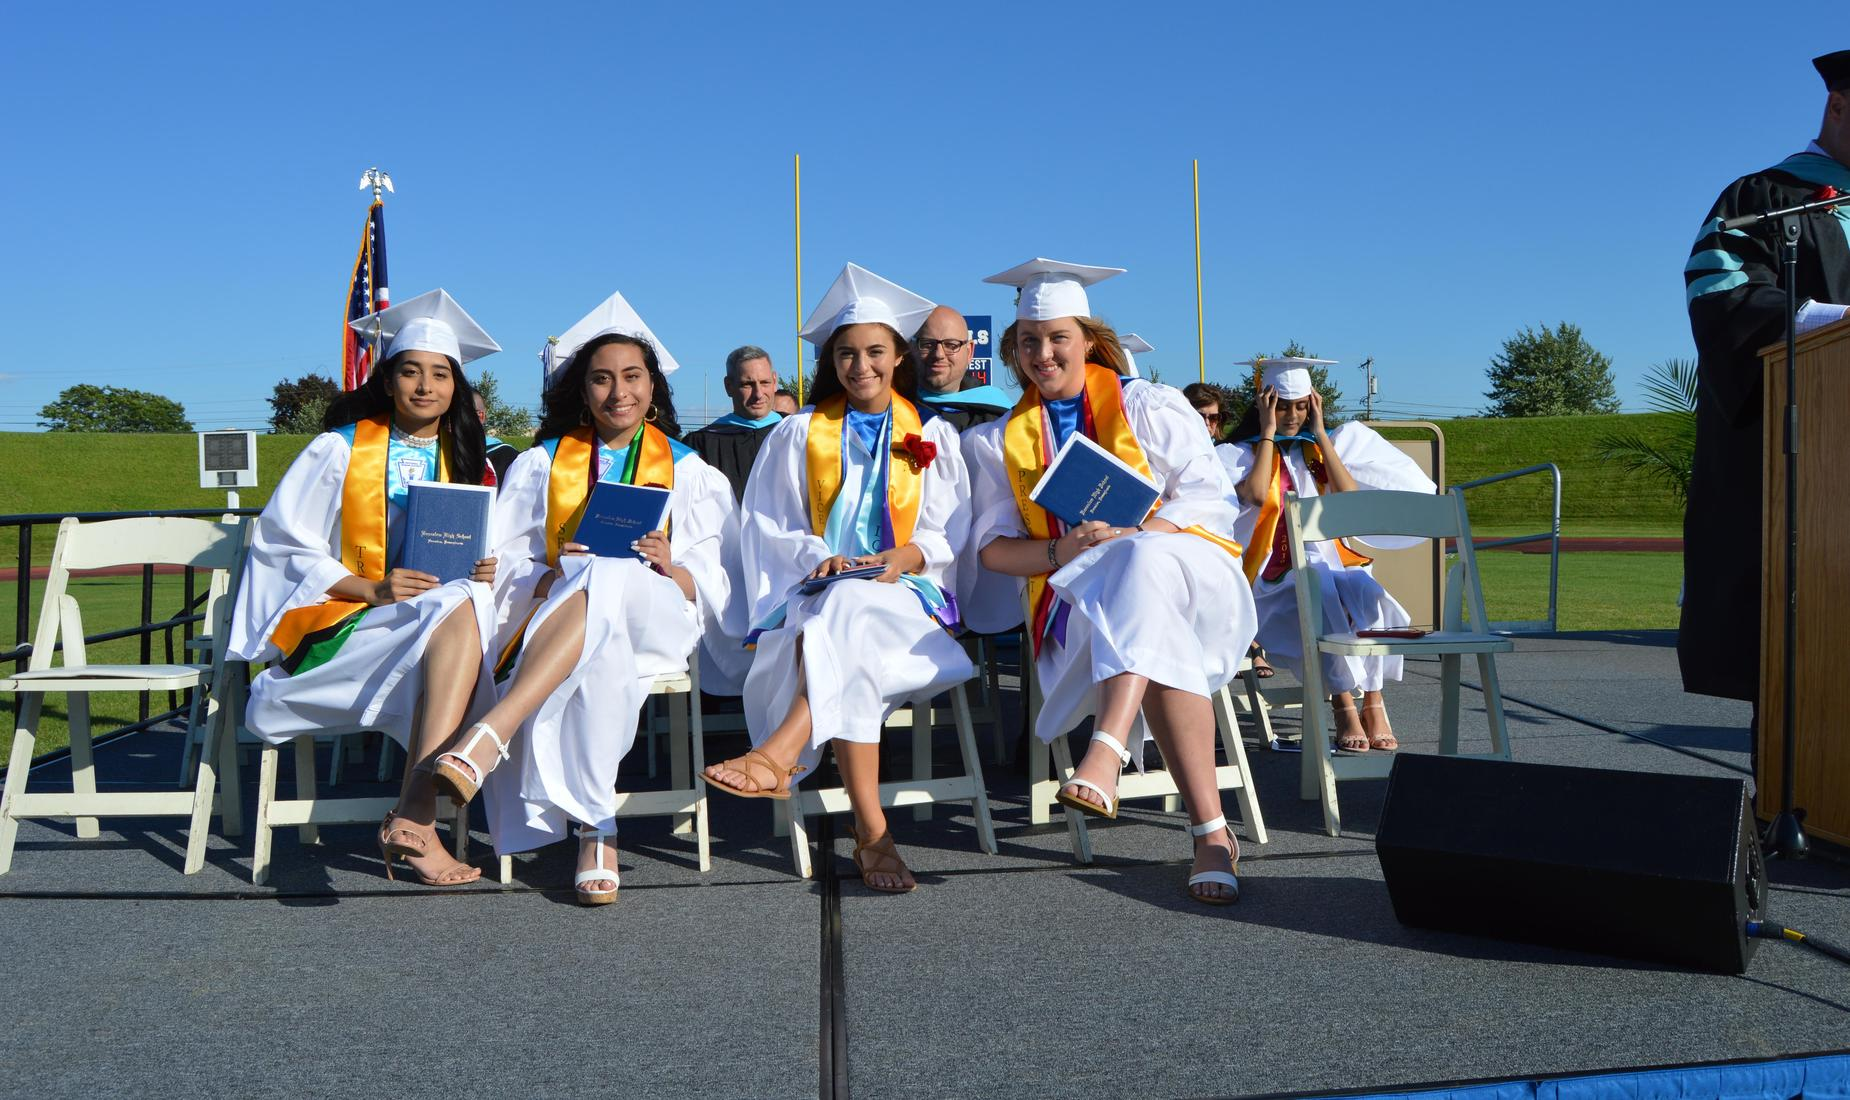 Class of 2019 officers dressed in their white graduation gowns sitting on the dias during the commencement